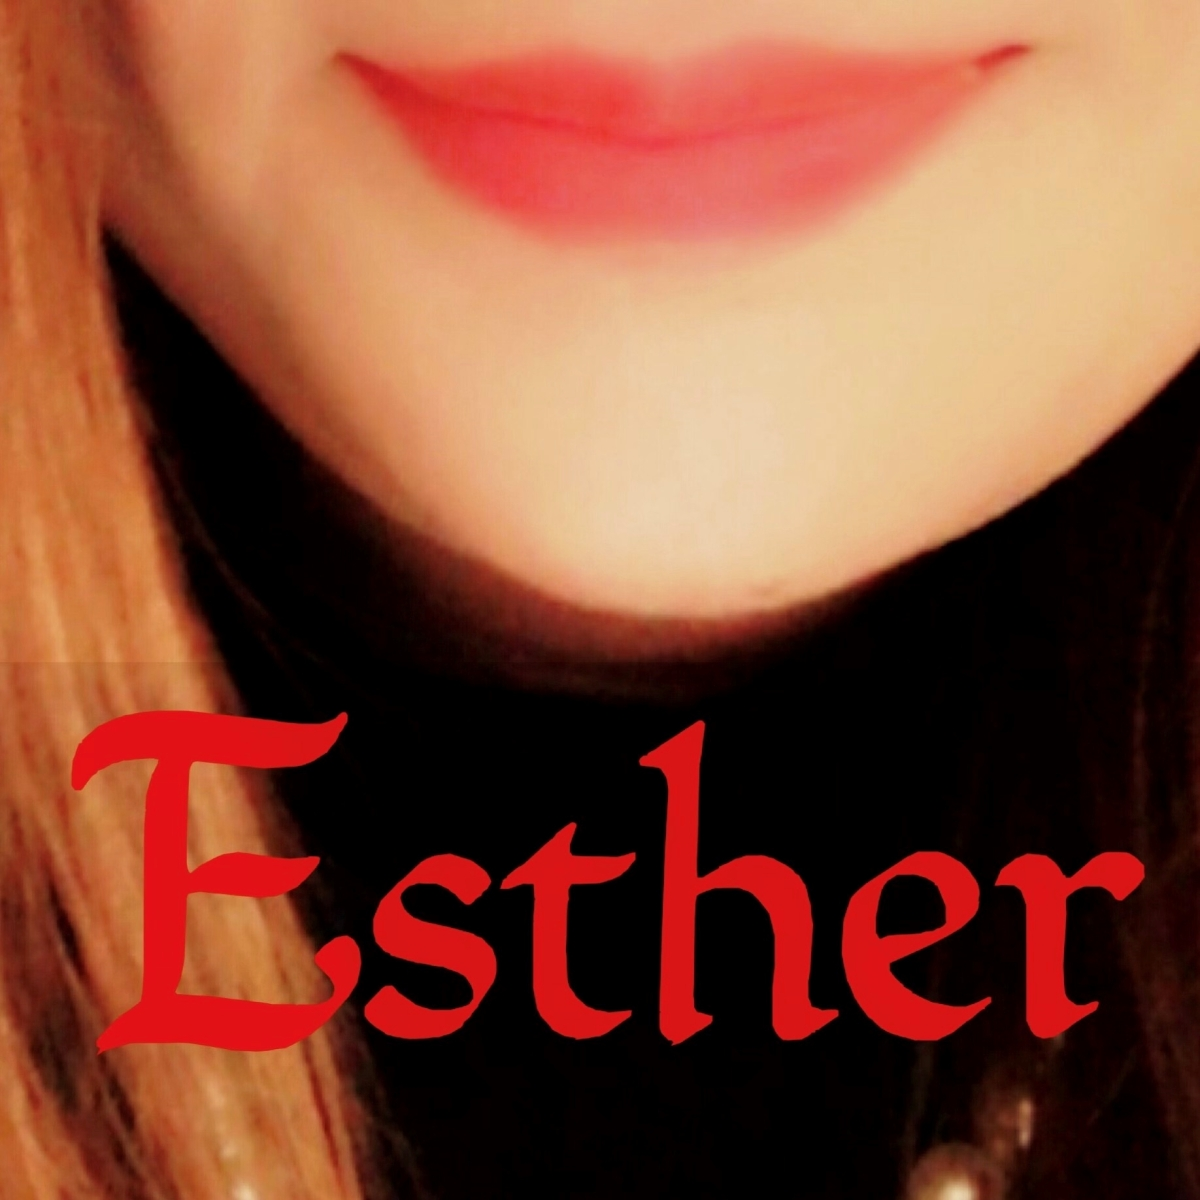 THE ERA OF ESTHER: YOU ARE BEING POSITIONED FOR PROMOTION